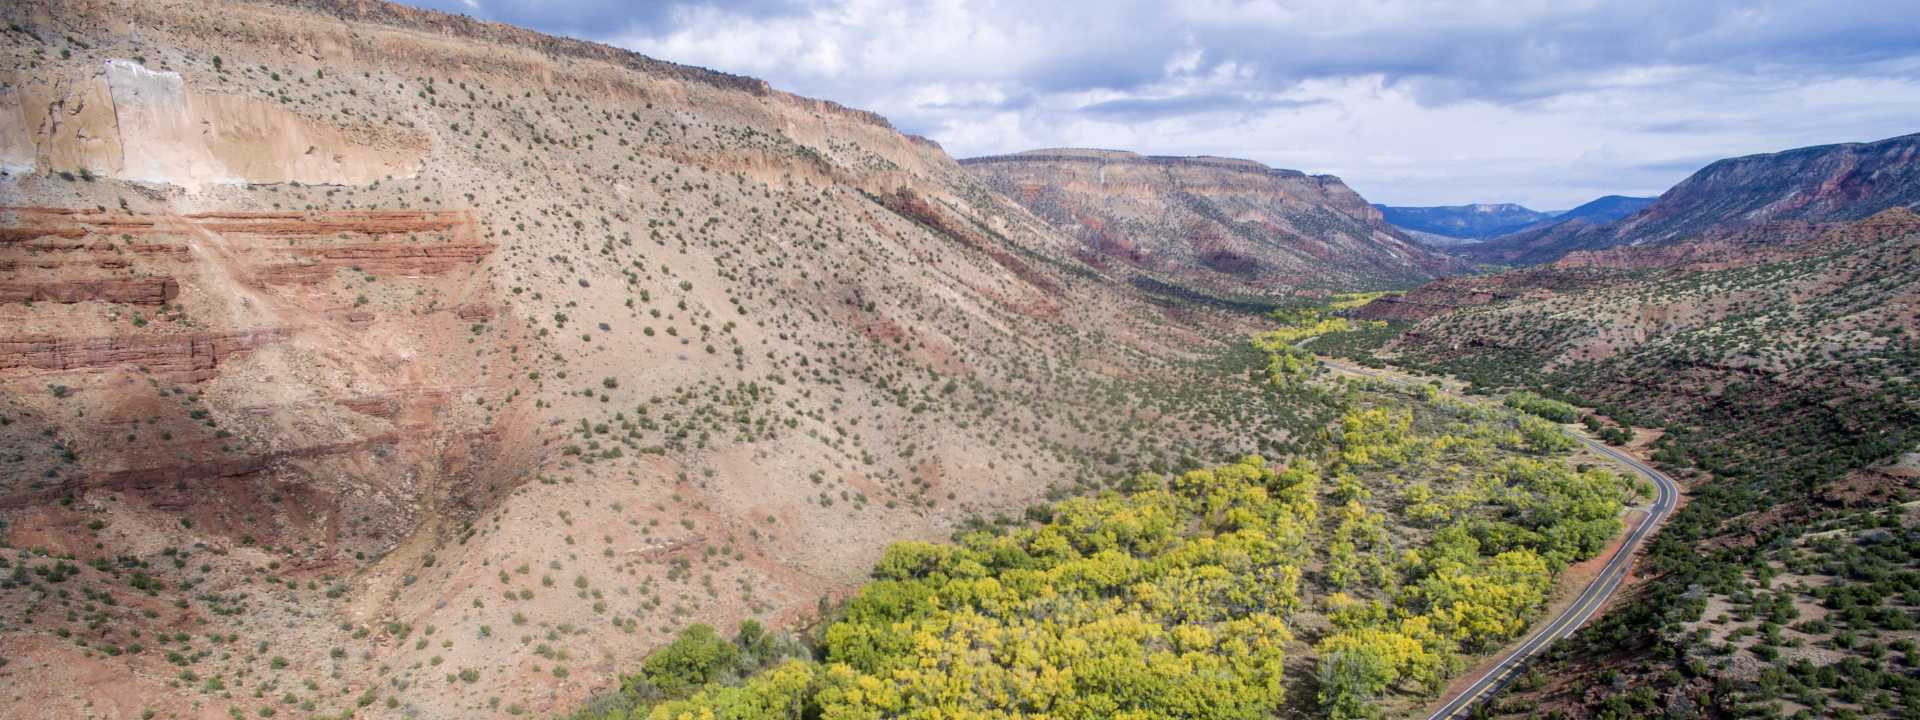 Jemez Mountain Trail National Scenic Byway Header